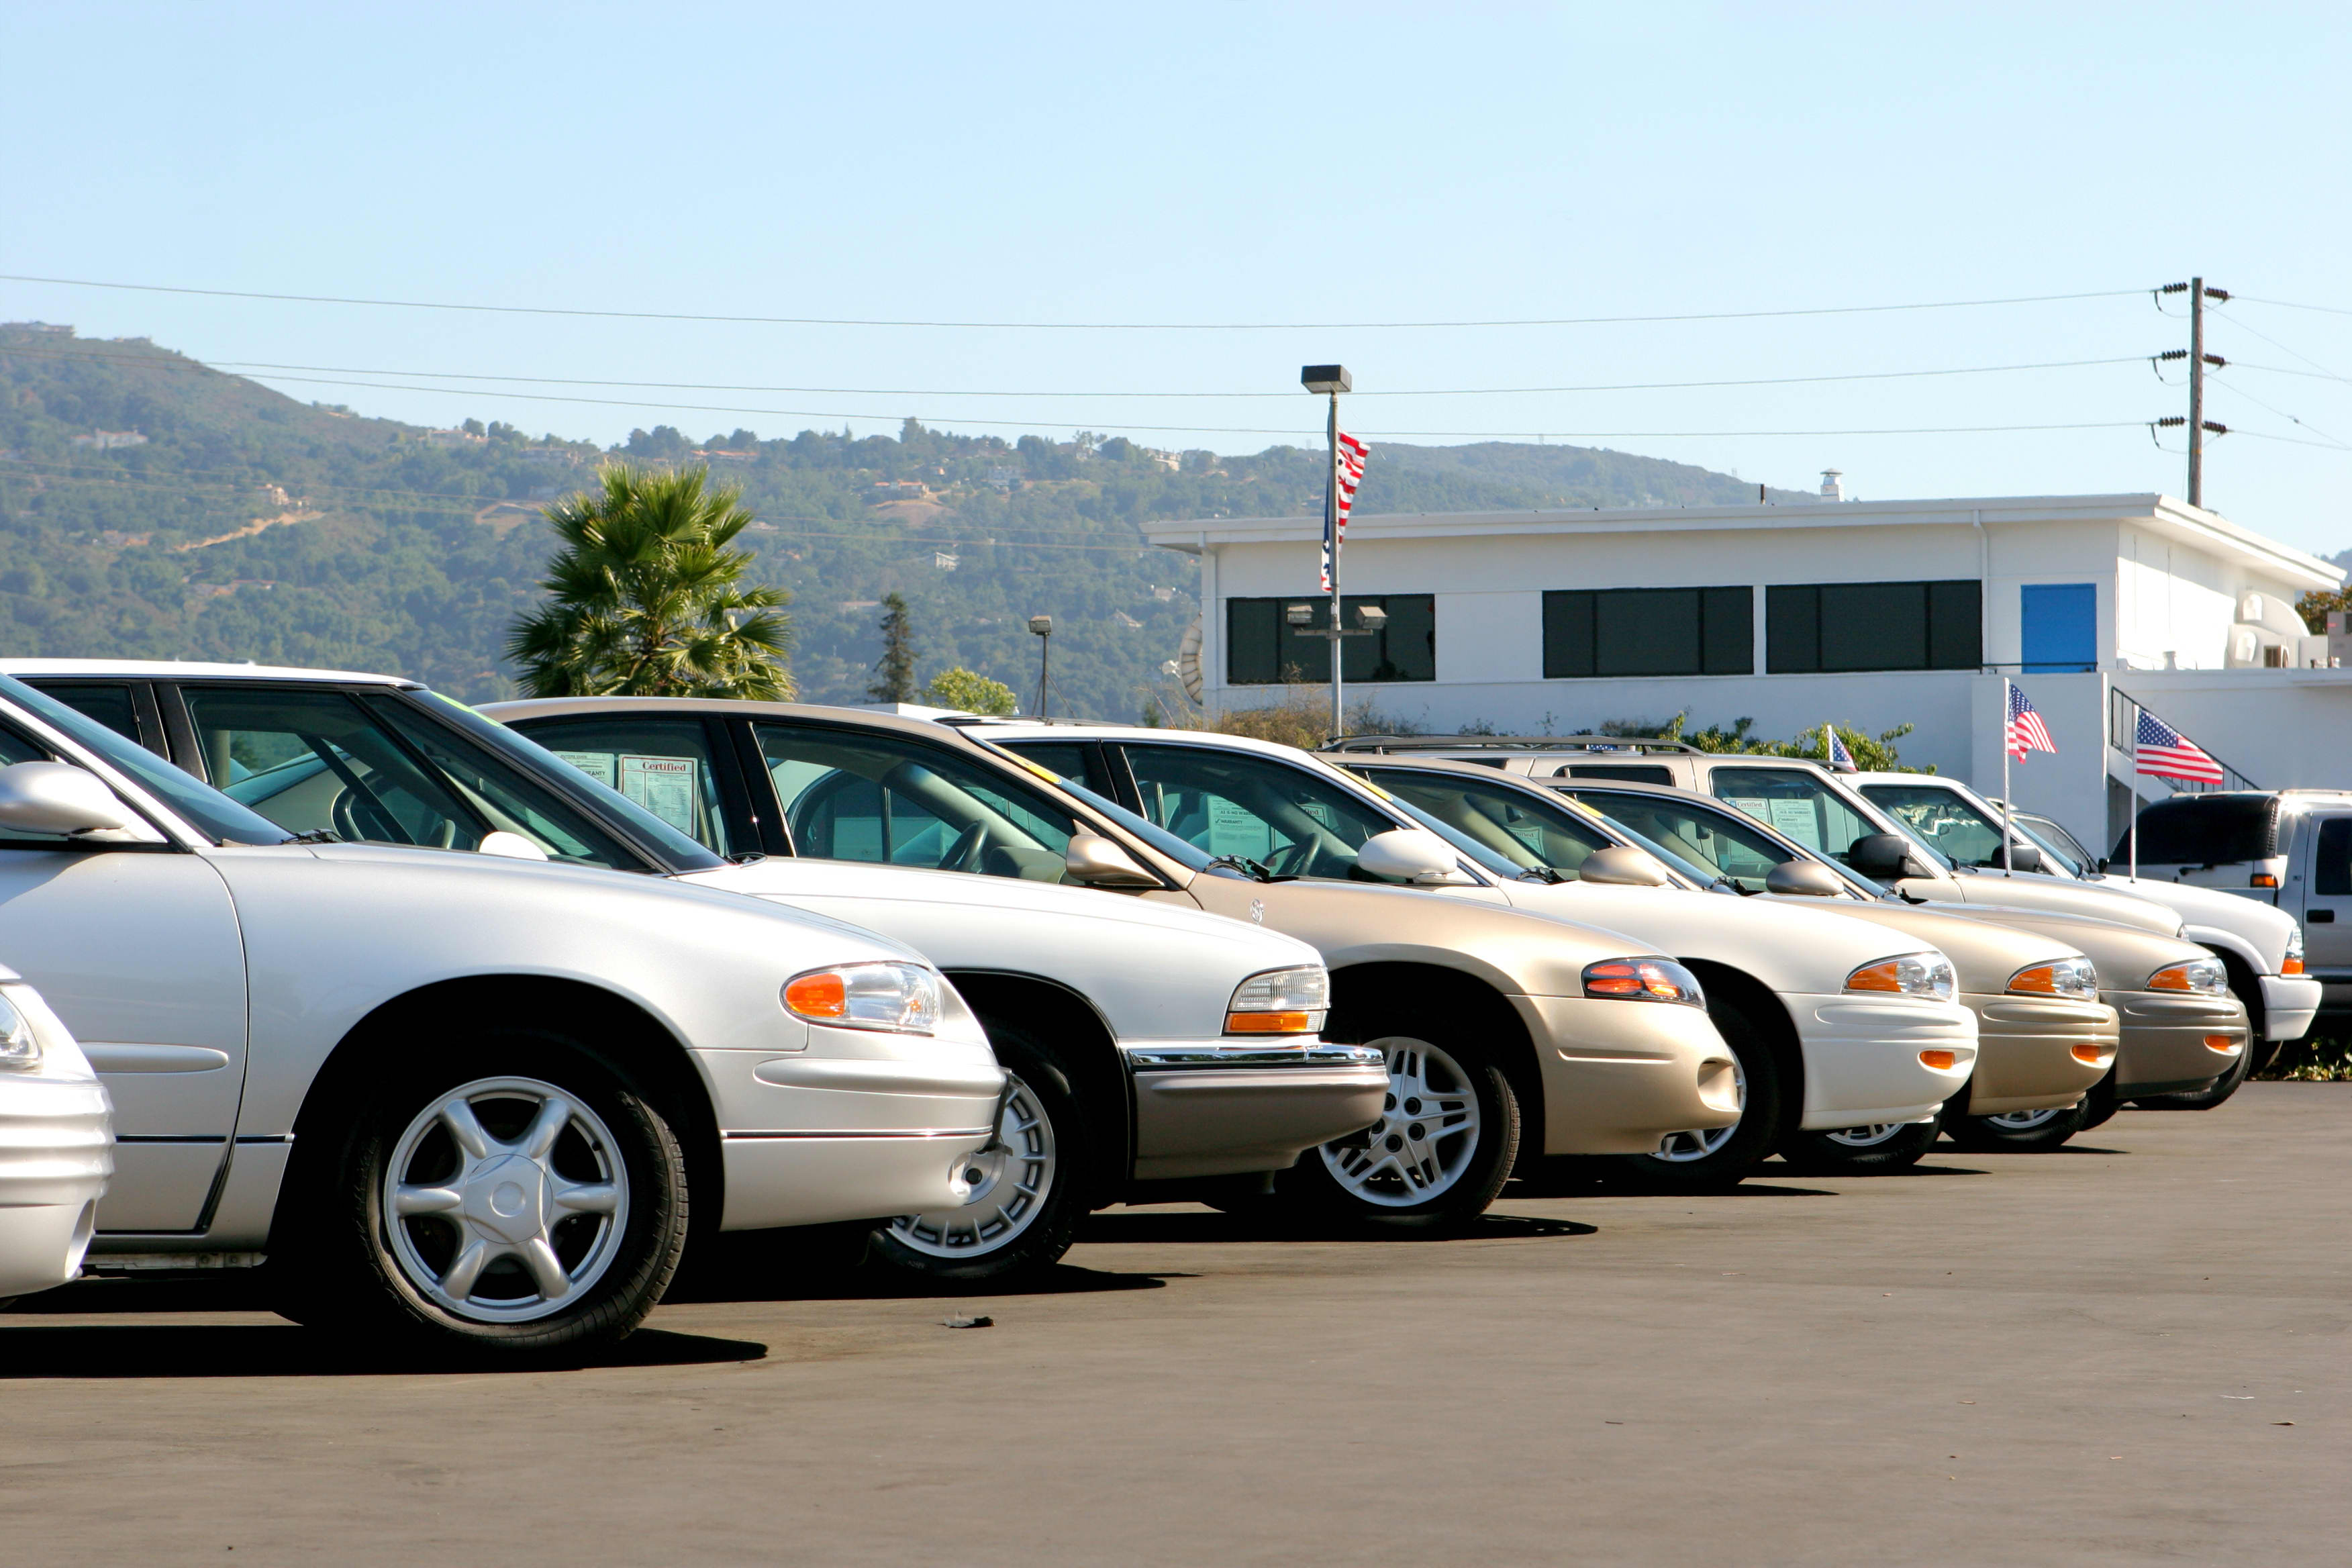 Donating a car to charity? You might want to pump the brakes